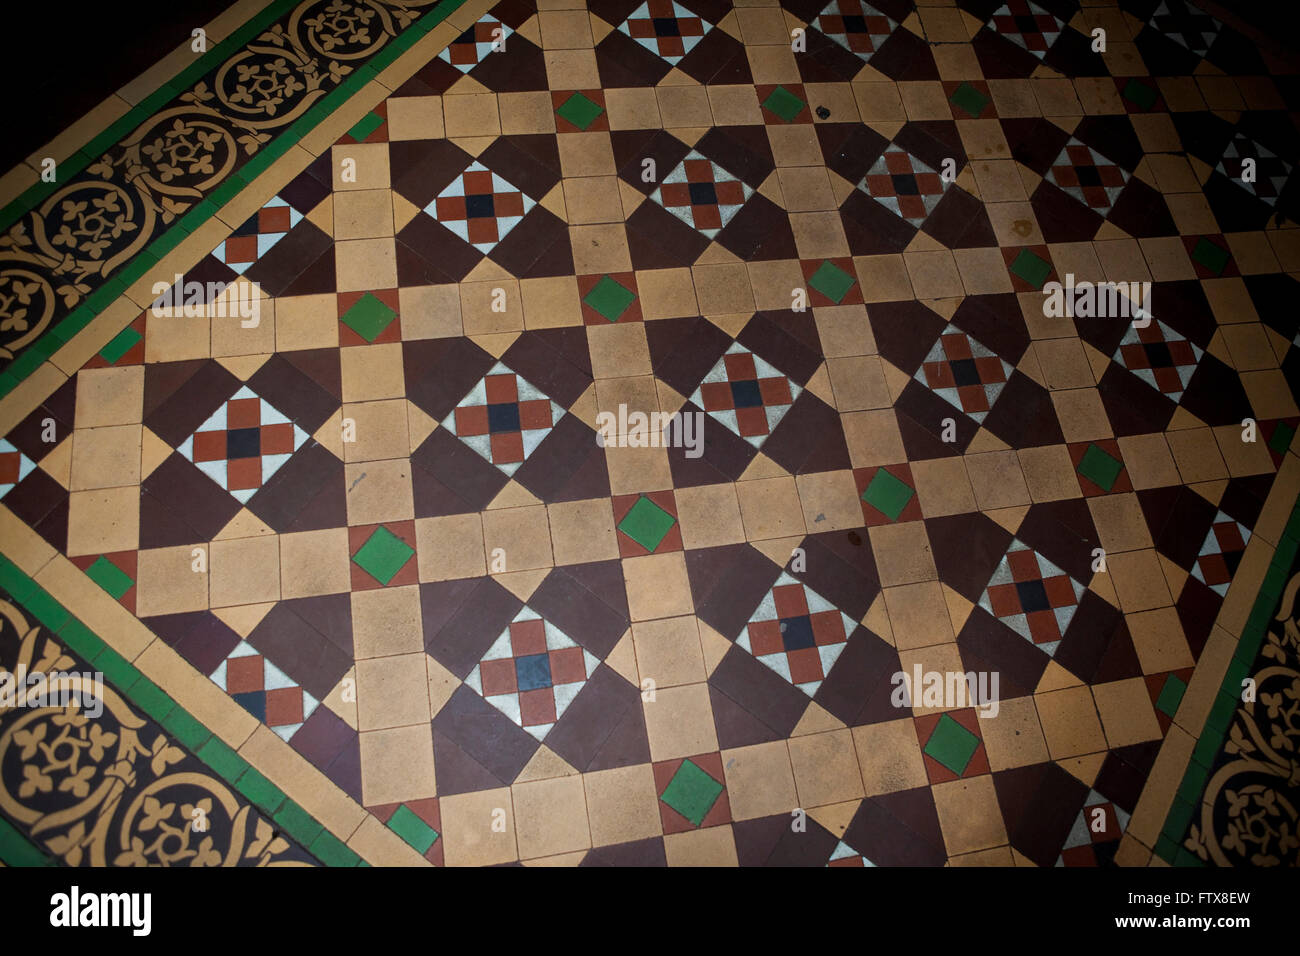 An old mosaic patterned hallway floor mad eup of many small tiles an old mosaic patterned hallway floor mad eup of many small tiles to create an intricate pattern probably victorian or edwardian dailygadgetfo Choice Image